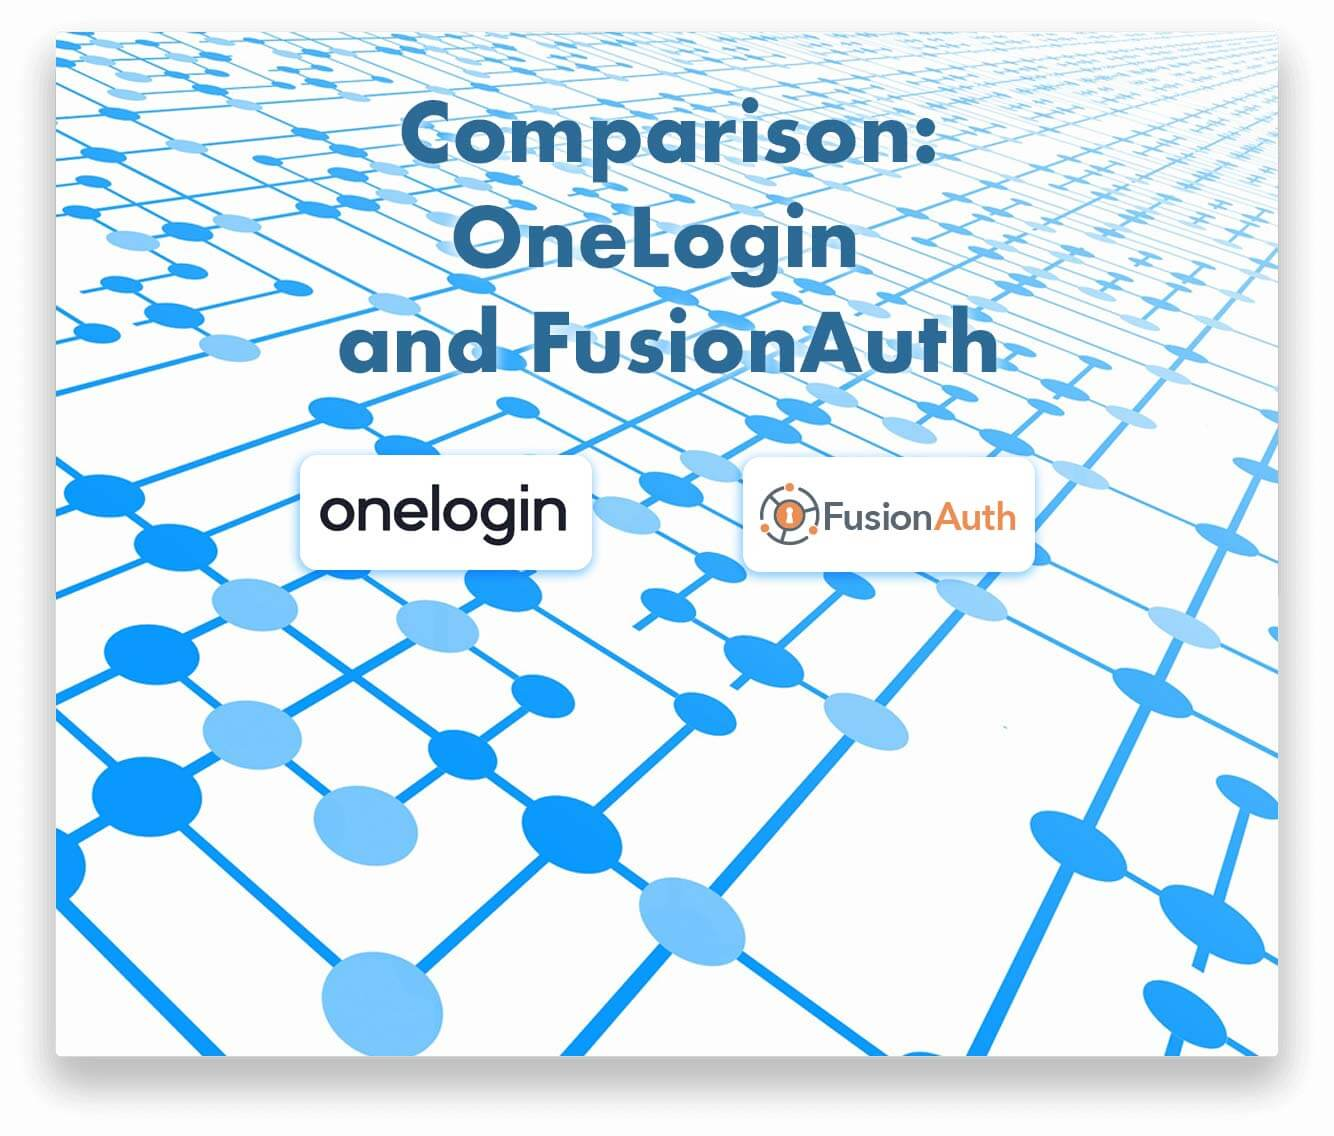 Compare FusionAuth and OneLogin for your identity and access management solution.